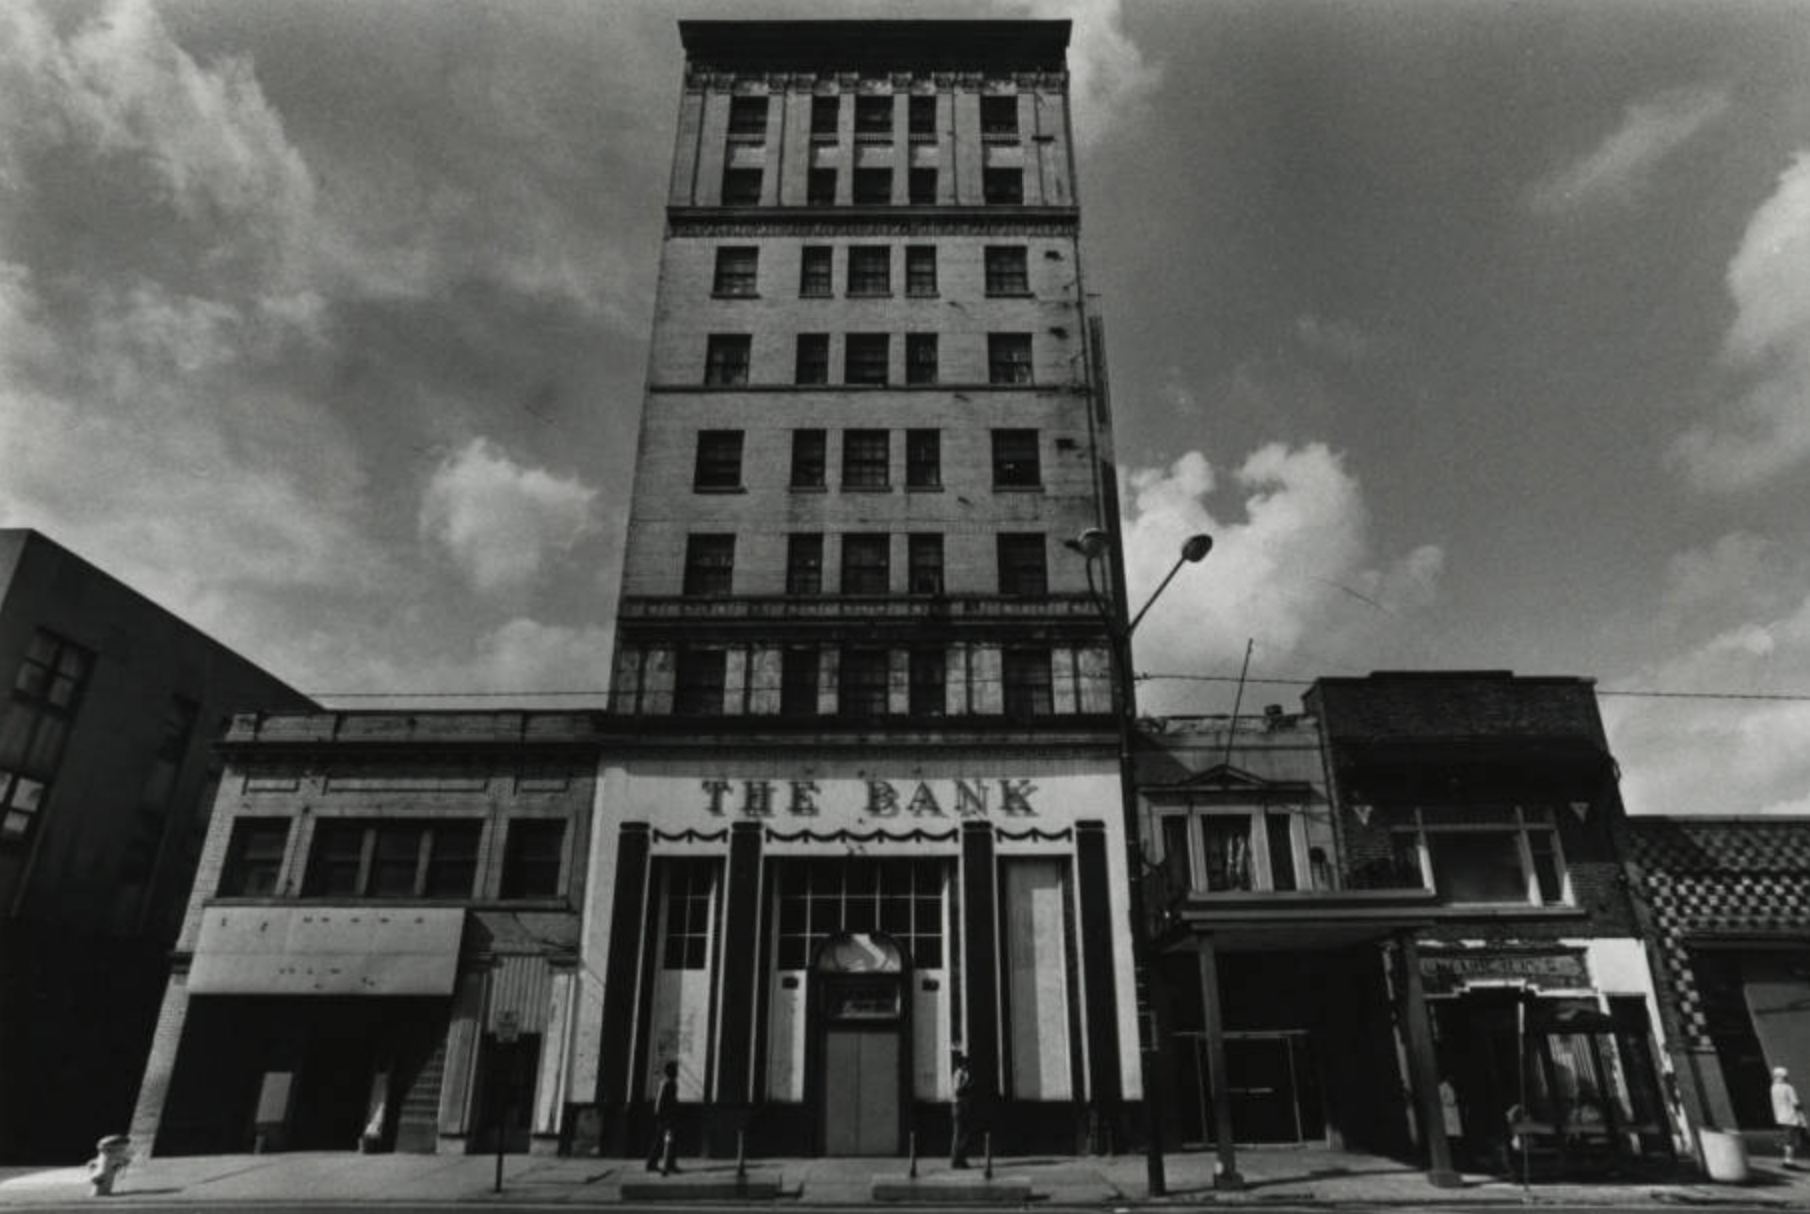 The Anthony Wayne Hotel with the Bank on the ground floor.